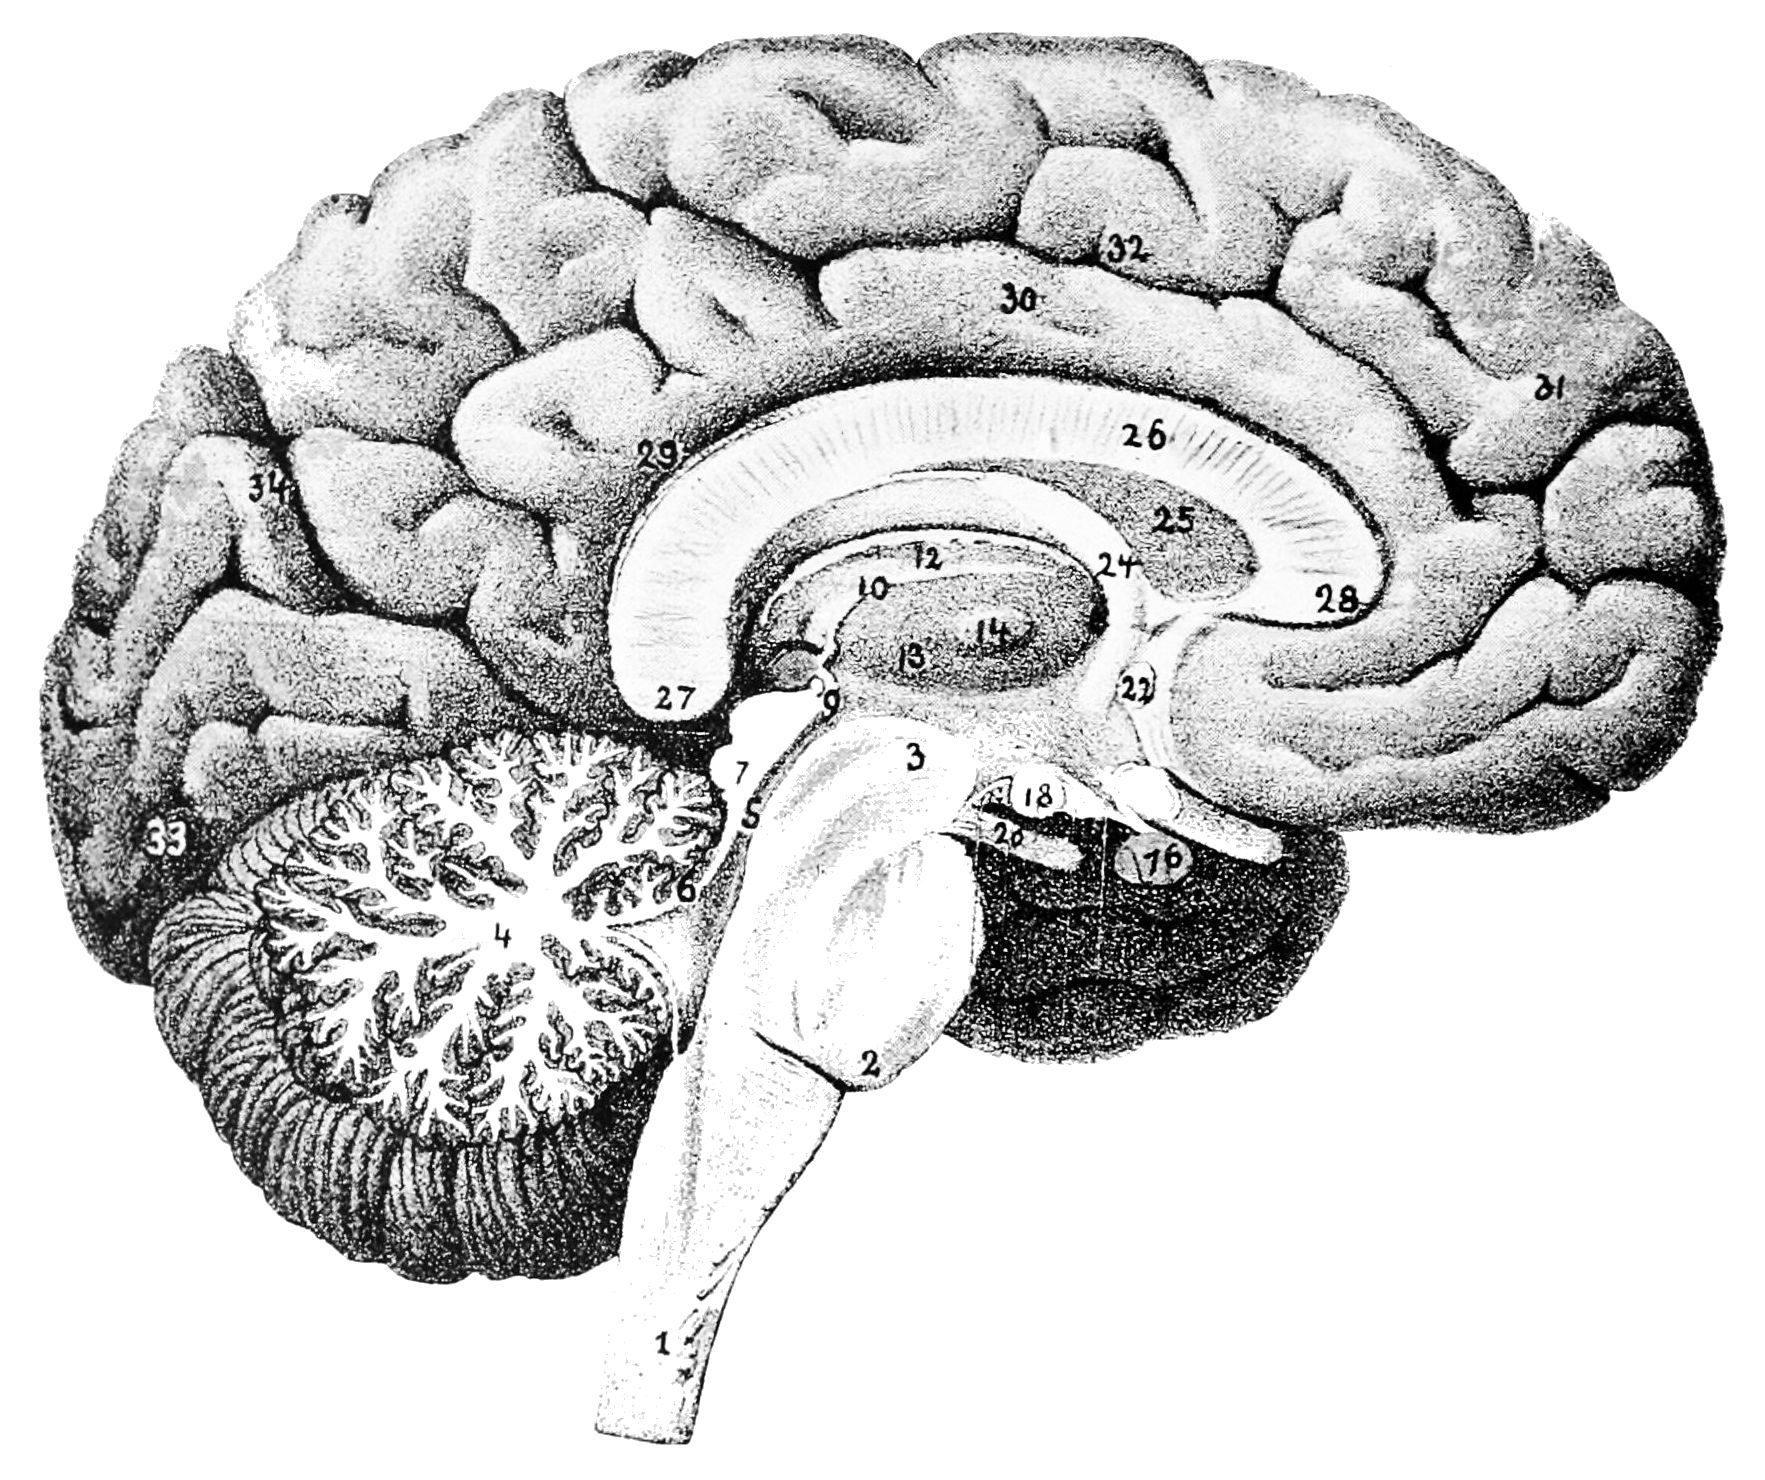 Fein Anatomy And Physiology Of The Brain Wikipedia Fotos - Anatomie ...